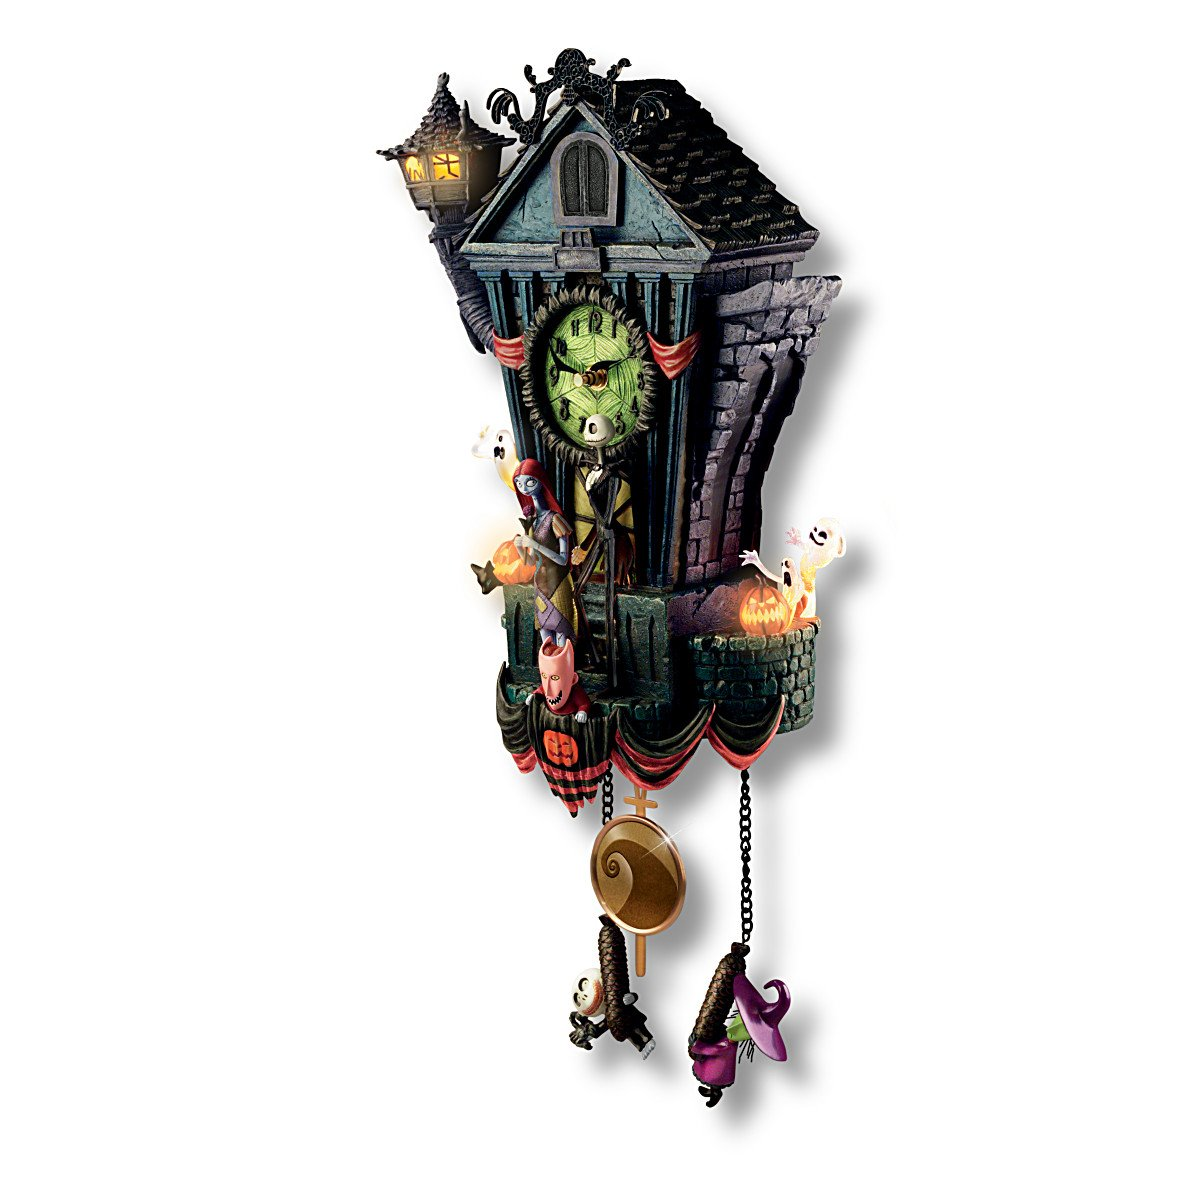 disney nightmare before christmas cuckoo clock led lights this is halloween song moving parts 21